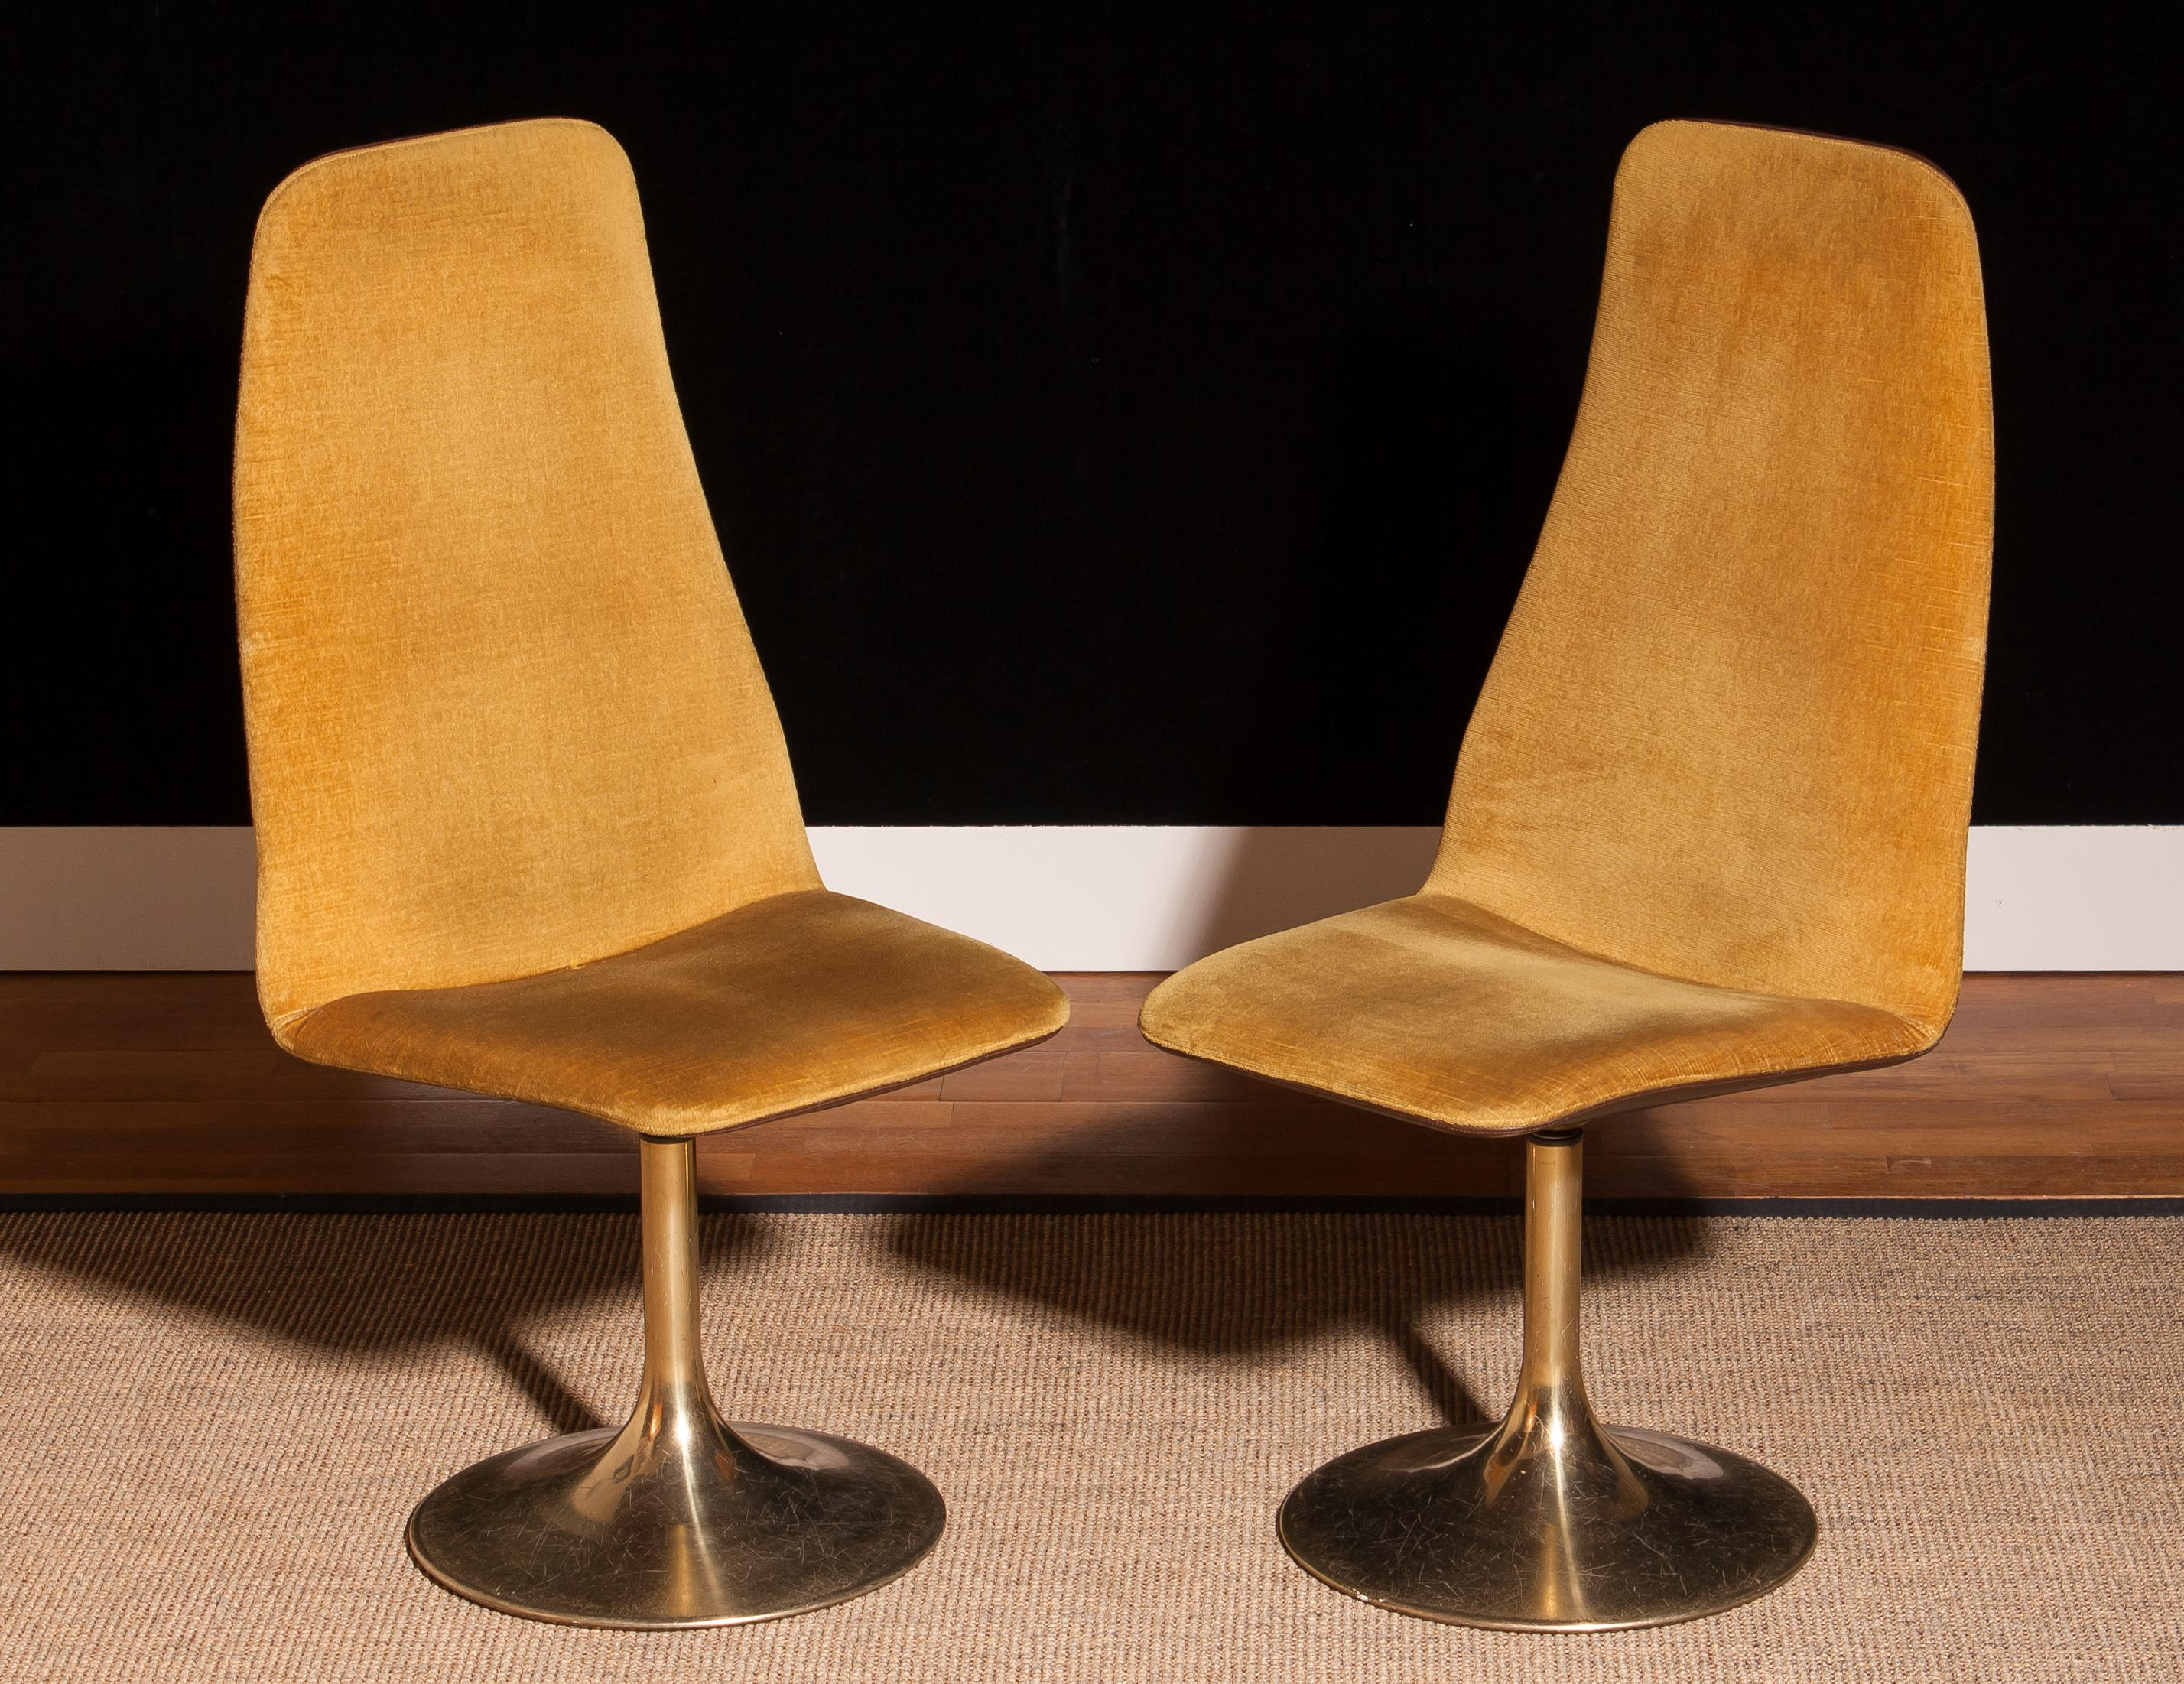 Superb 1970S A Pair Of Gold Velours And Brass Swivel Chairs By Johanson Design Creativecarmelina Interior Chair Design Creativecarmelinacom